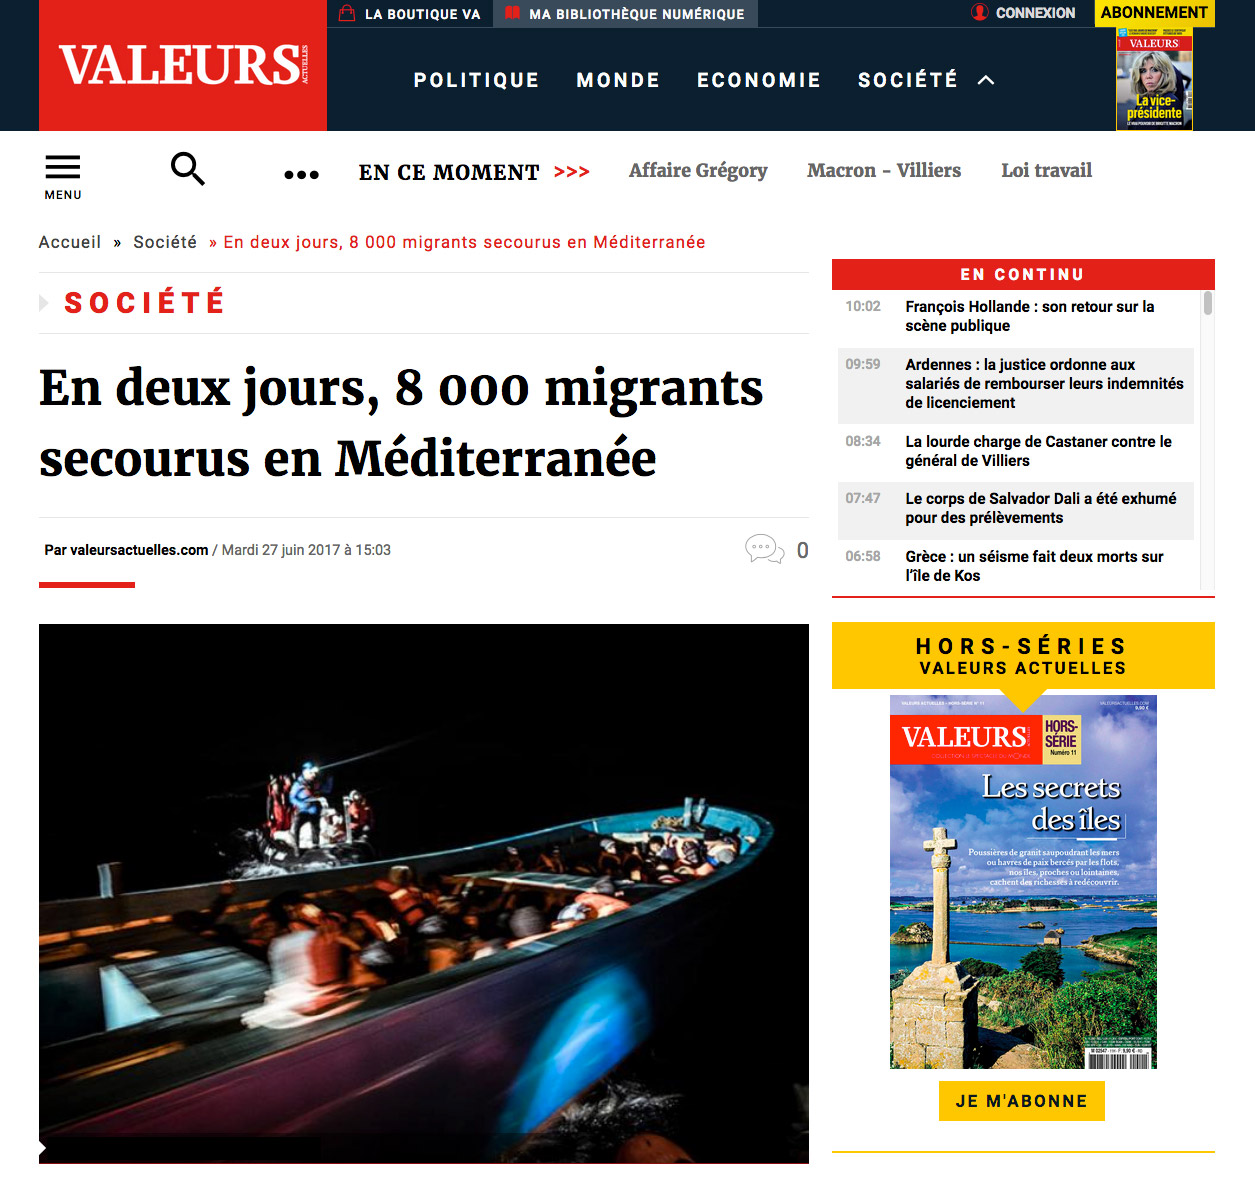 Marco Panzetti's photographs publication in Valeurs